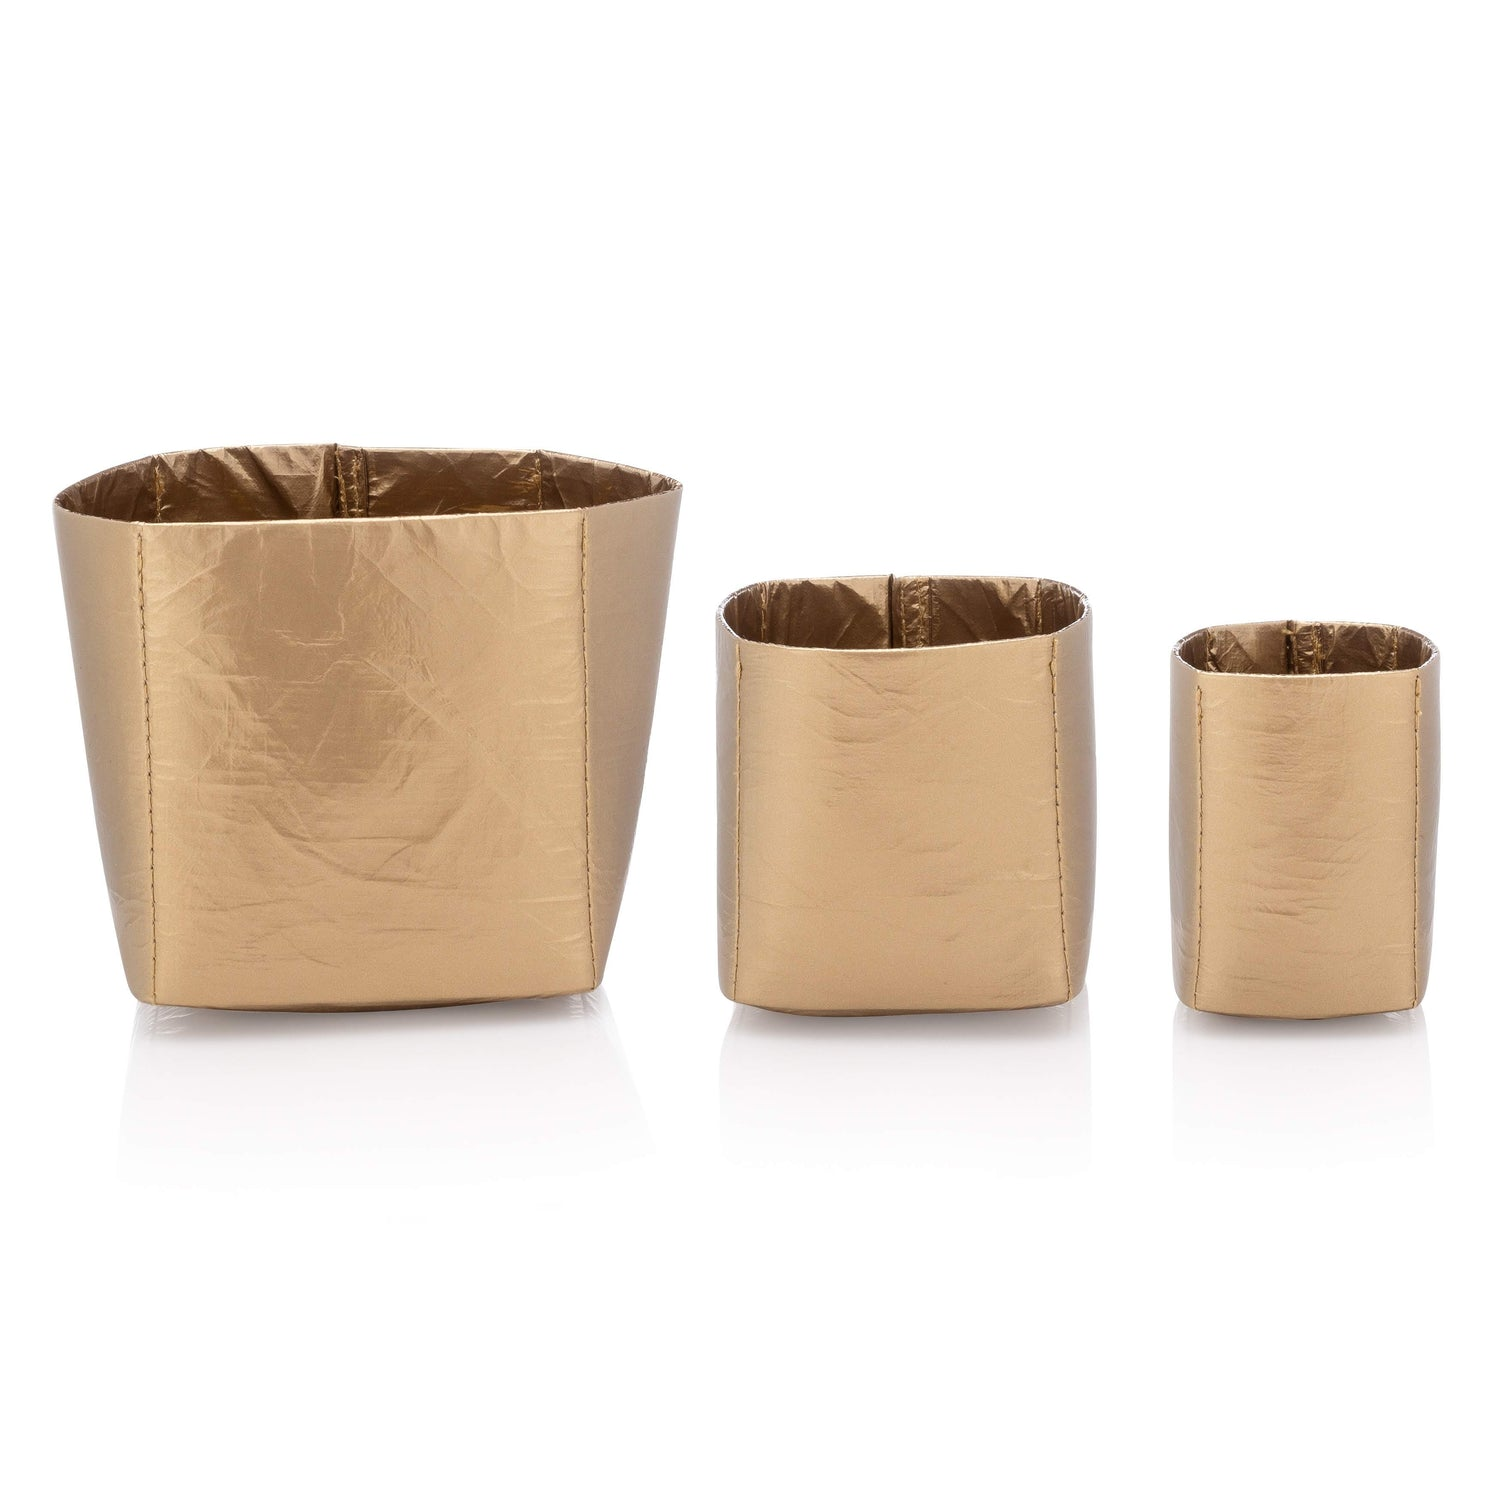 Trio of Travel Cups - Metallic Shiny Gold Foldable Cup Set